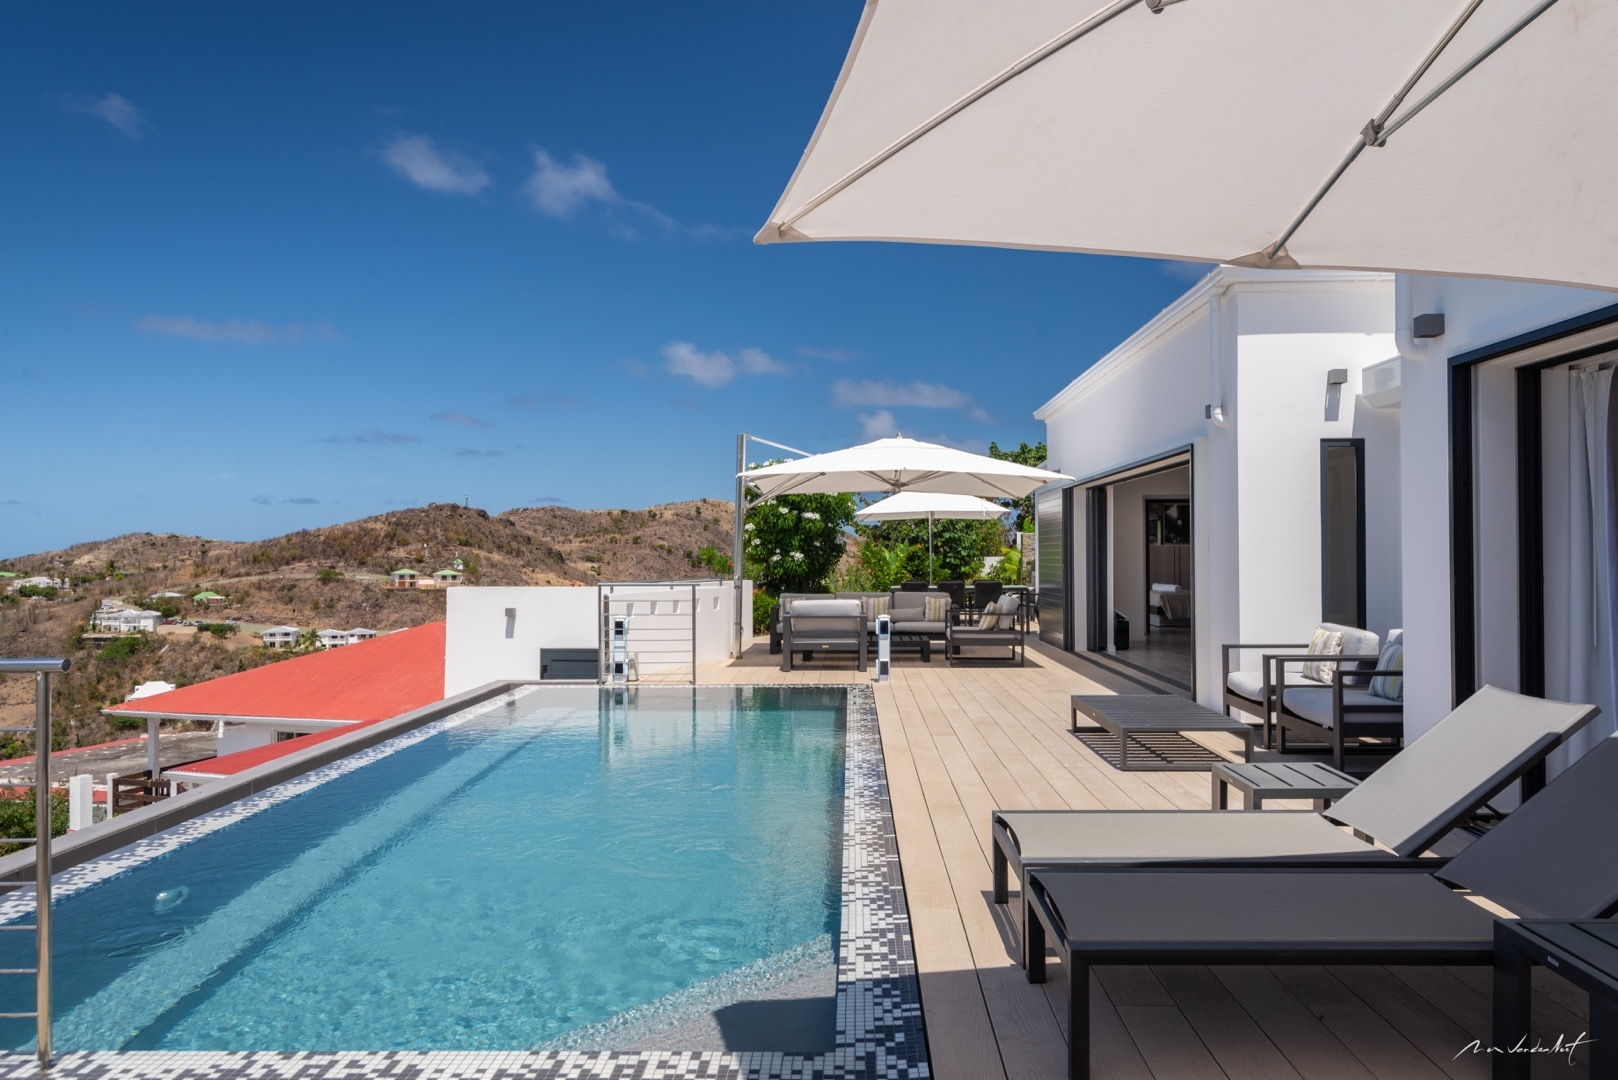 Luxury villa rentals caribbean - St barthelemy - Grand cul de sac - No location 4 - Iris - Image 1/58